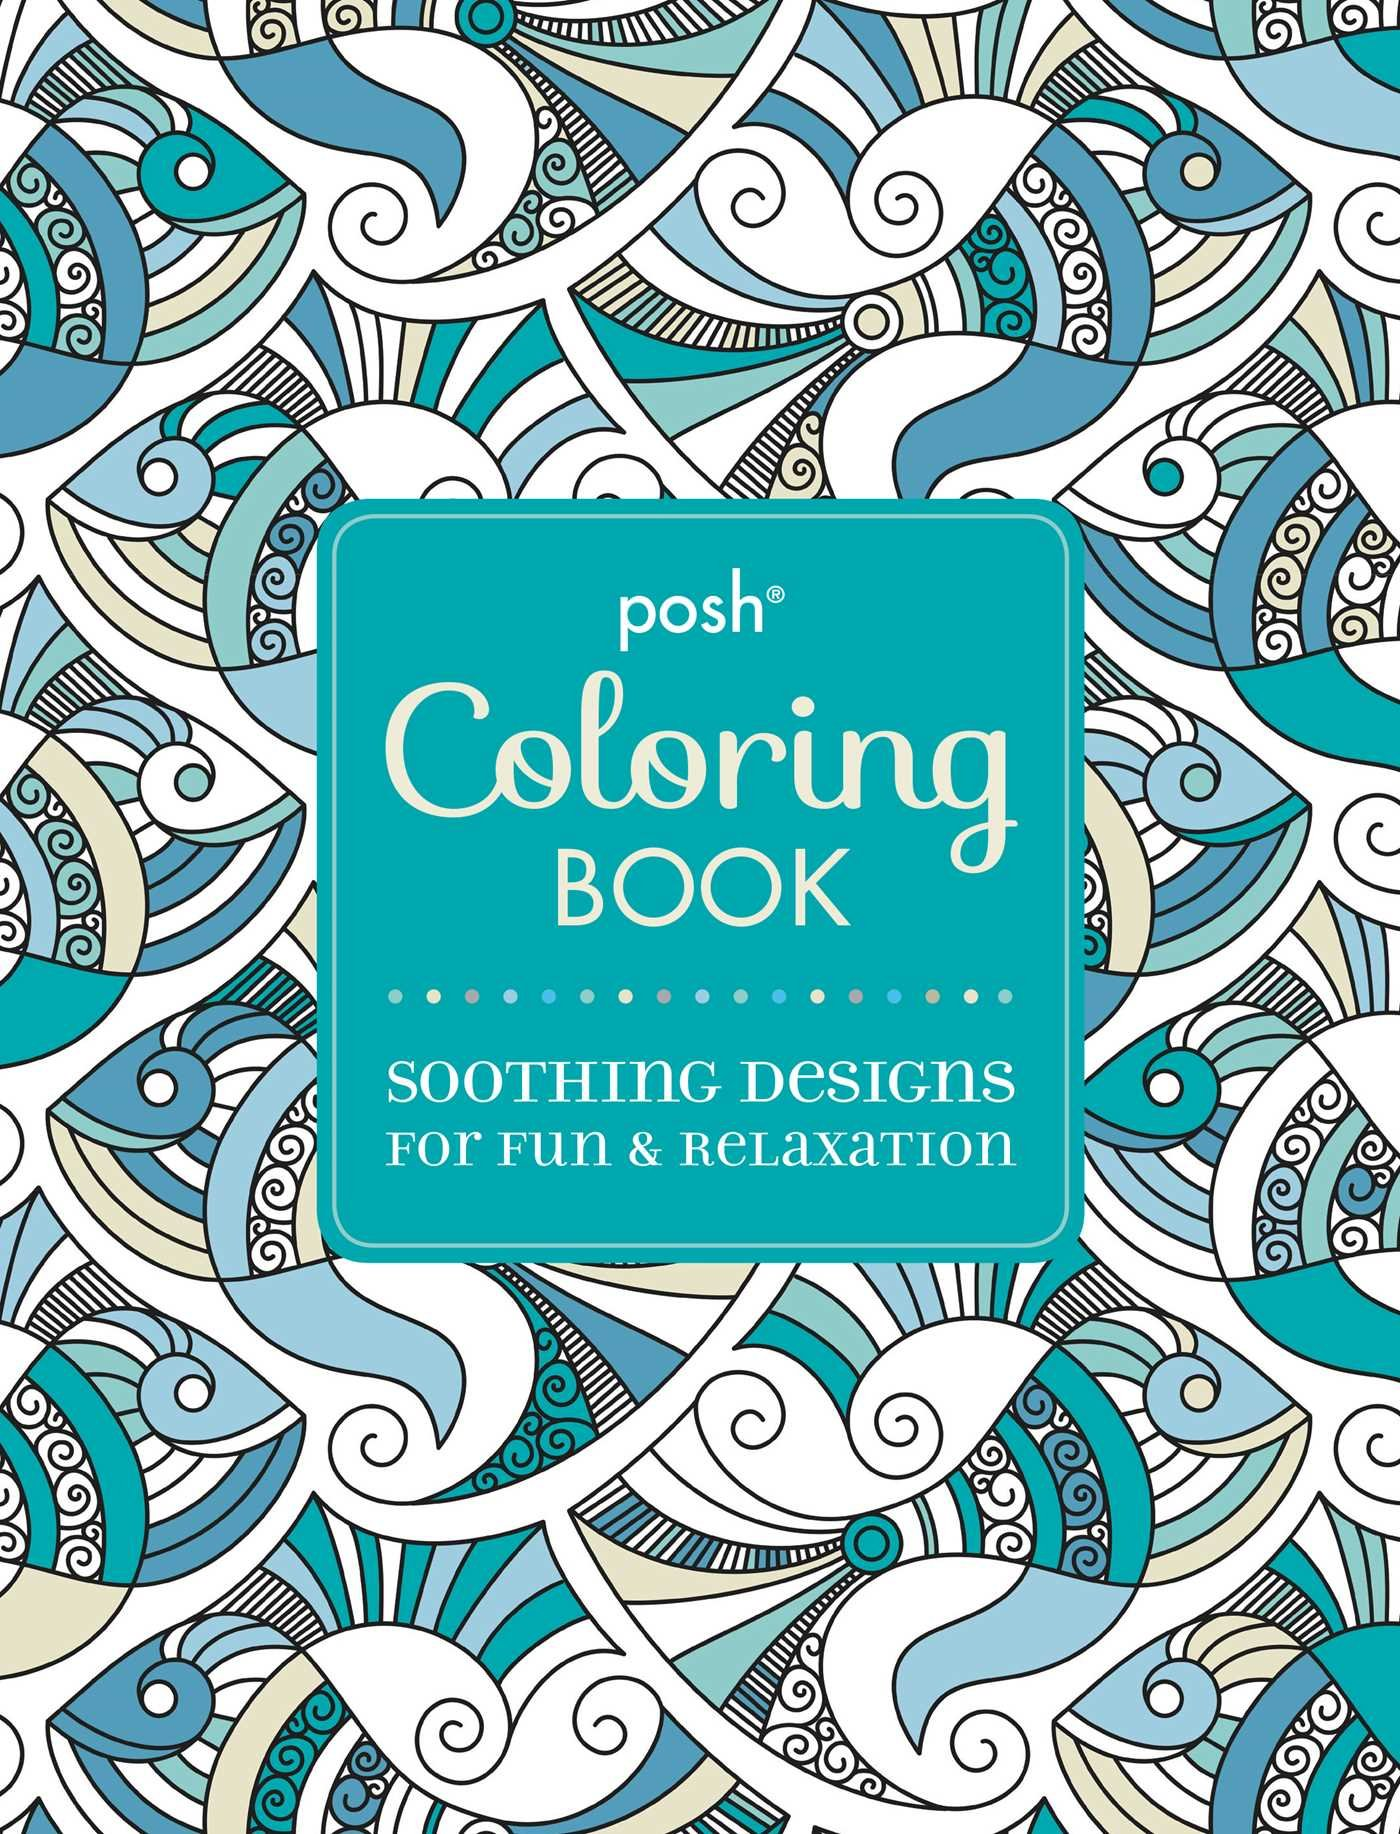 Art therapy coloring book michael omara - Posh Adult Coloring Book Soothing Designs For Fun Relaxation Posh Coloring Books Amazon Co Uk Andrews Mcmeel Publishing 0050837348899 Books